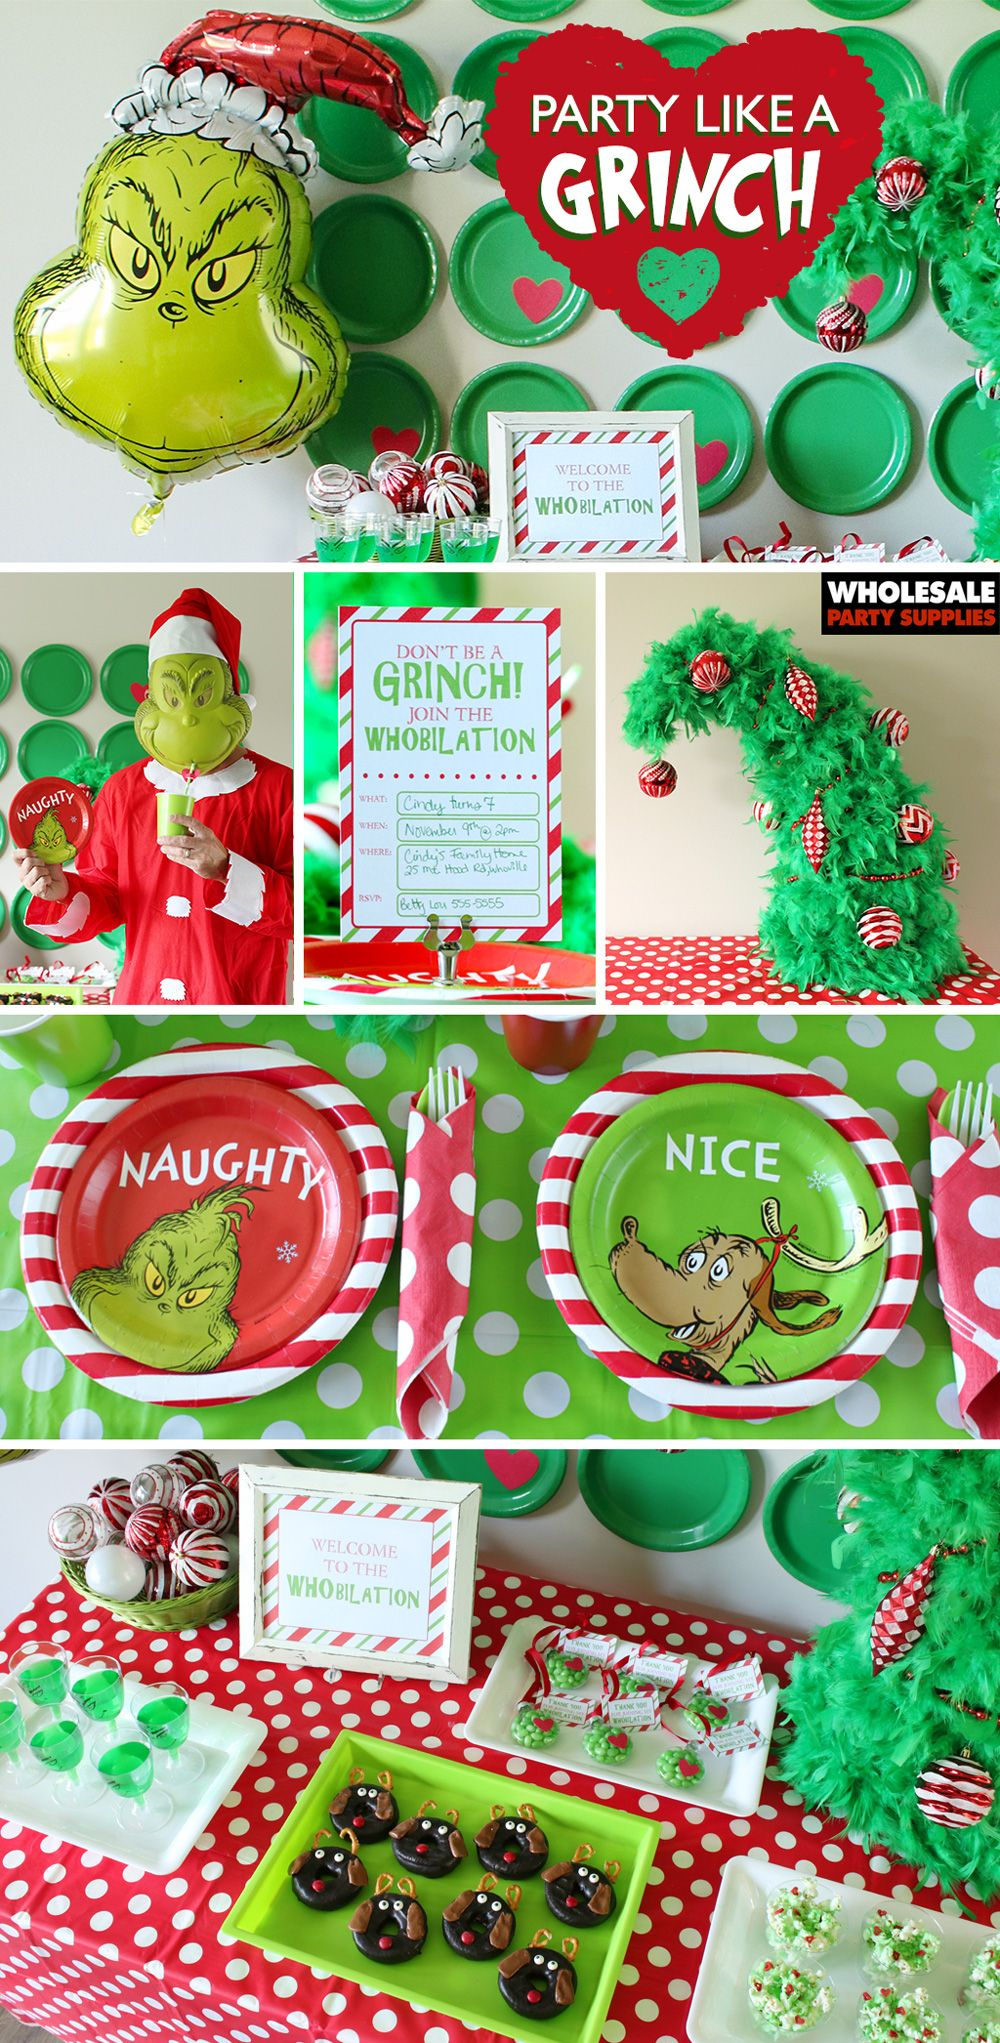 Grinch Party Ideas Dr Seuss Party Ideas Grinch Party Grinch